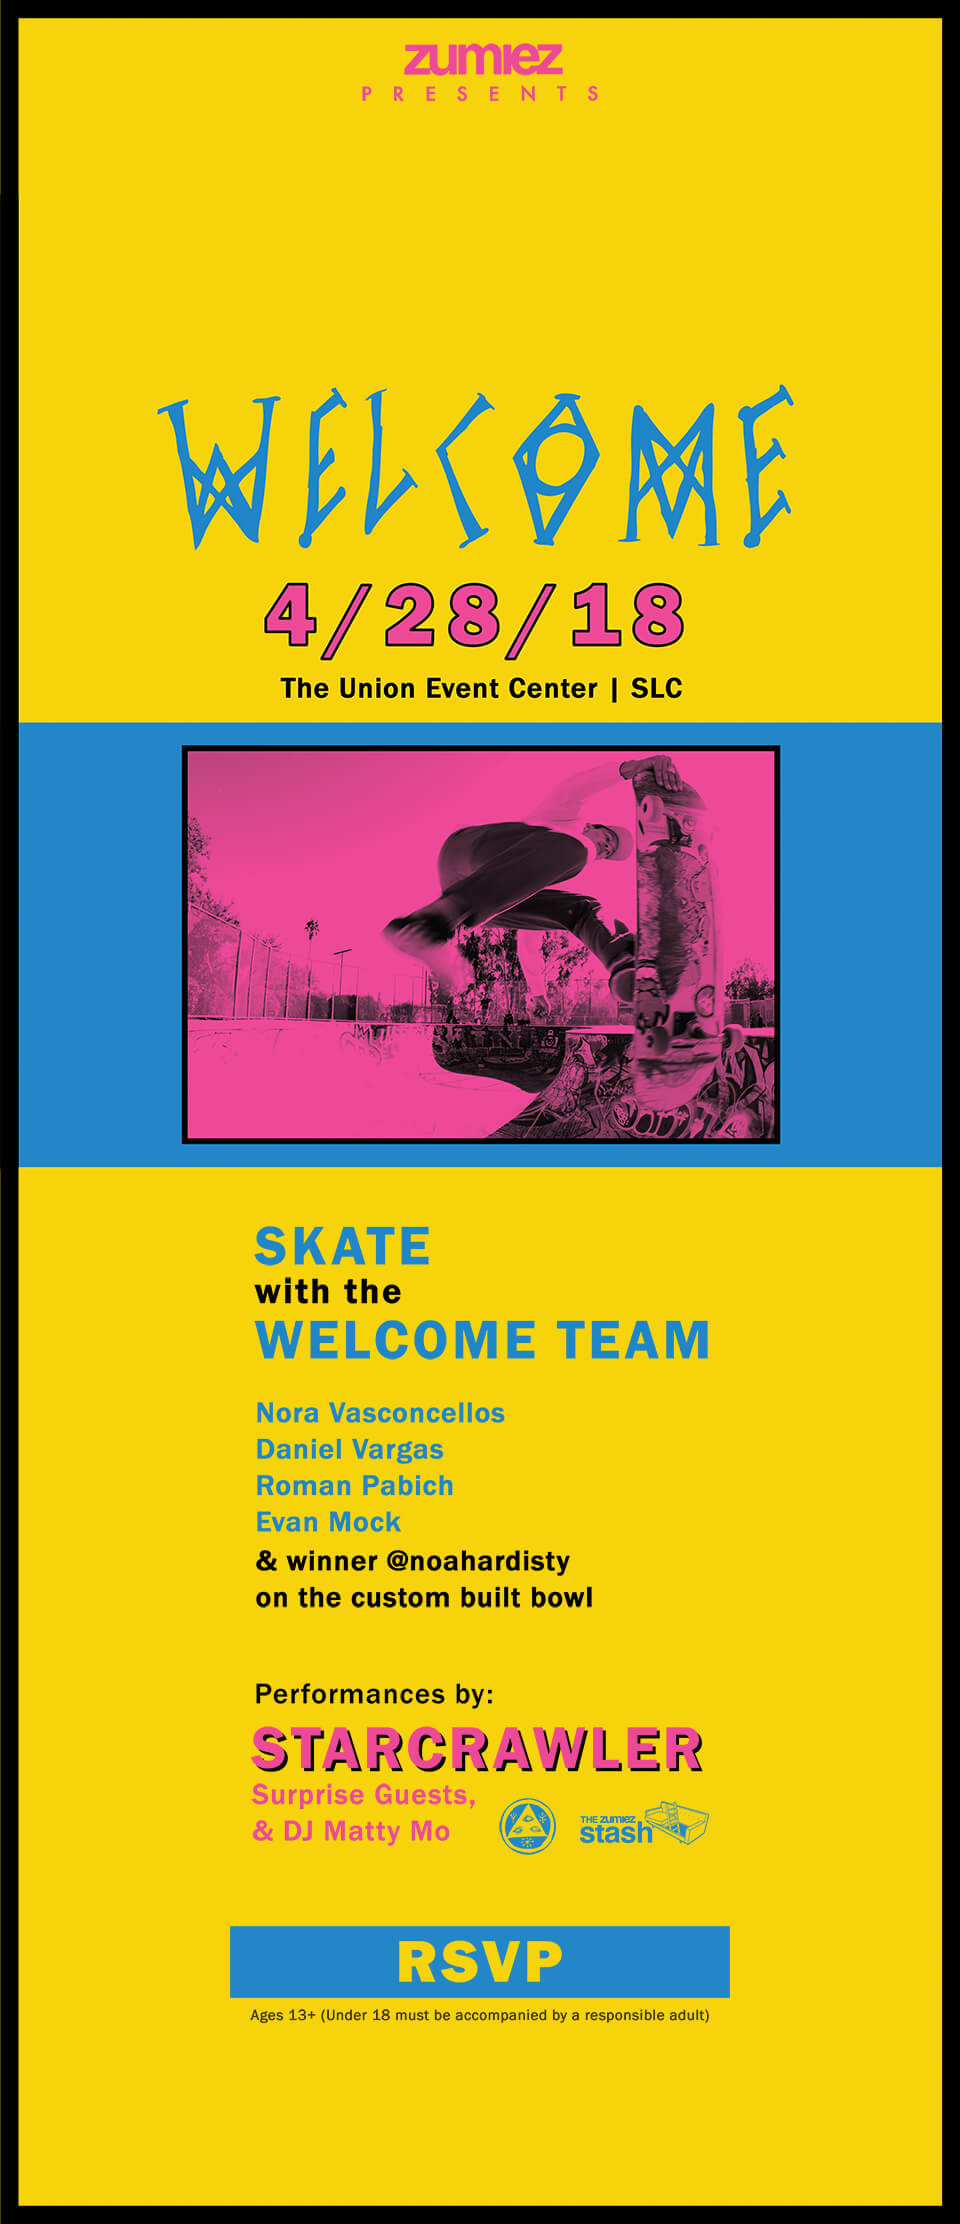 Zumiez Presents Skate with the Welcome Team